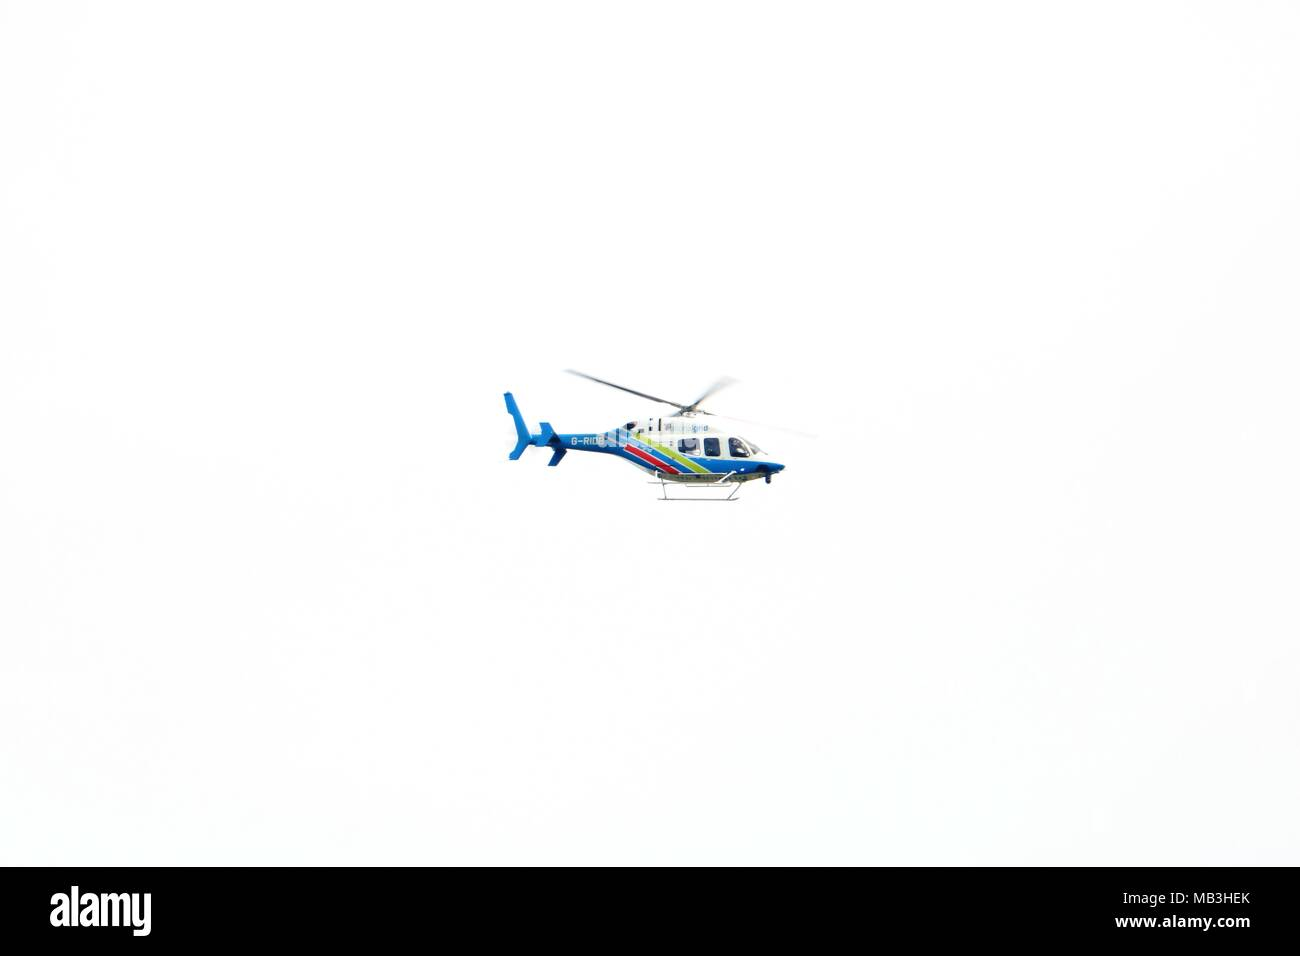 G-Ride National Grid helicopter in flight against a white cloudy sky - Stock Image